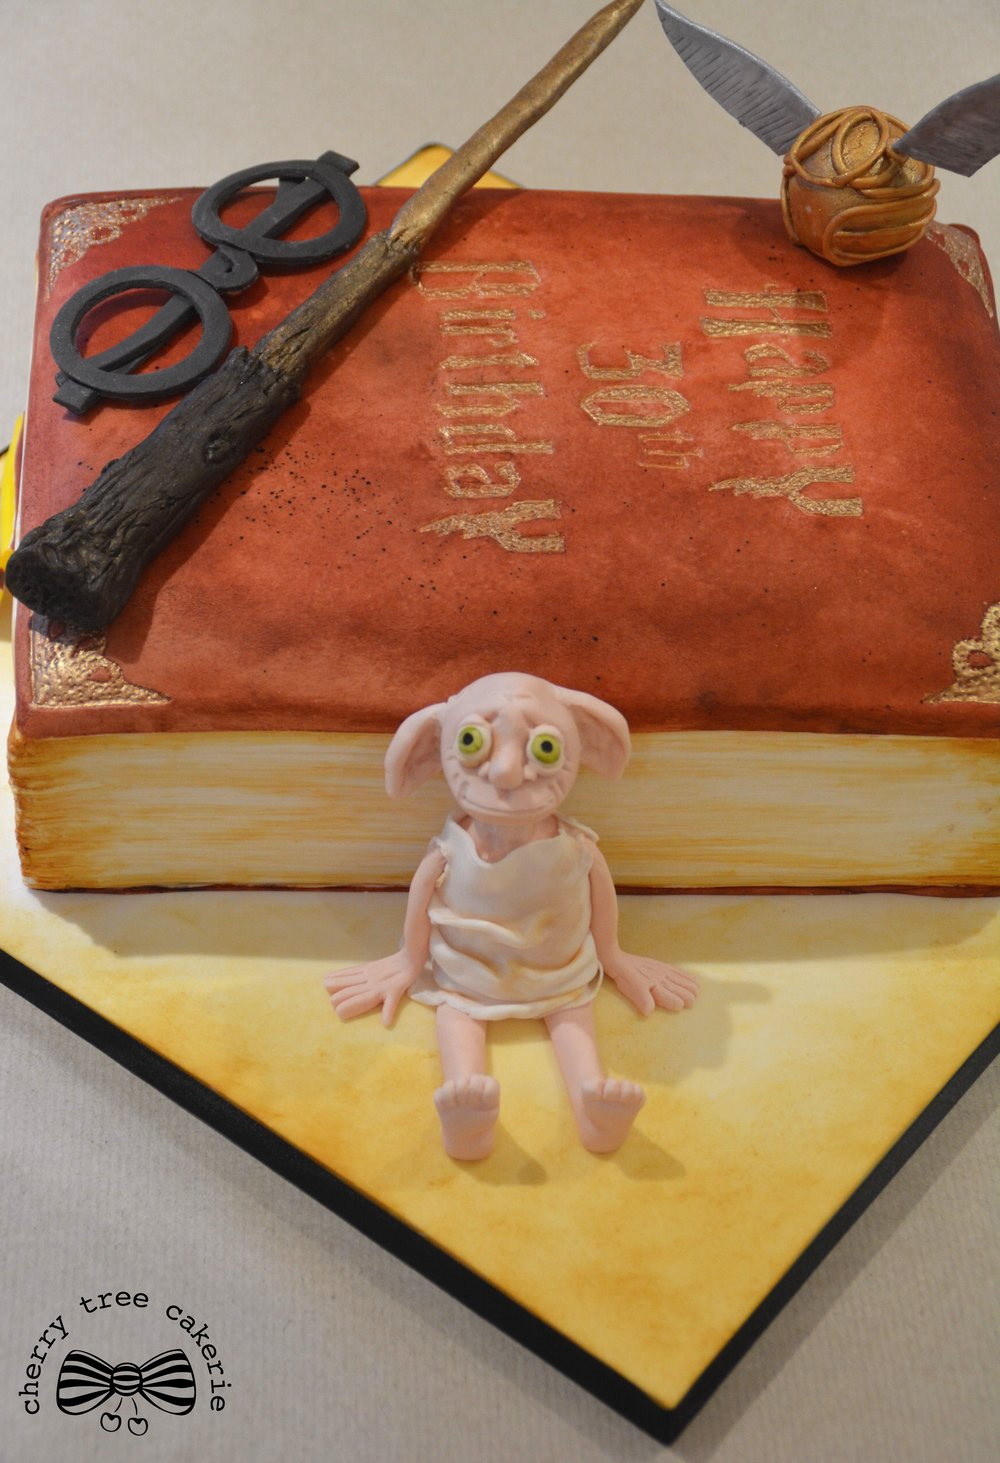 Harry-Potter-spellbook-cake-with-Dobby